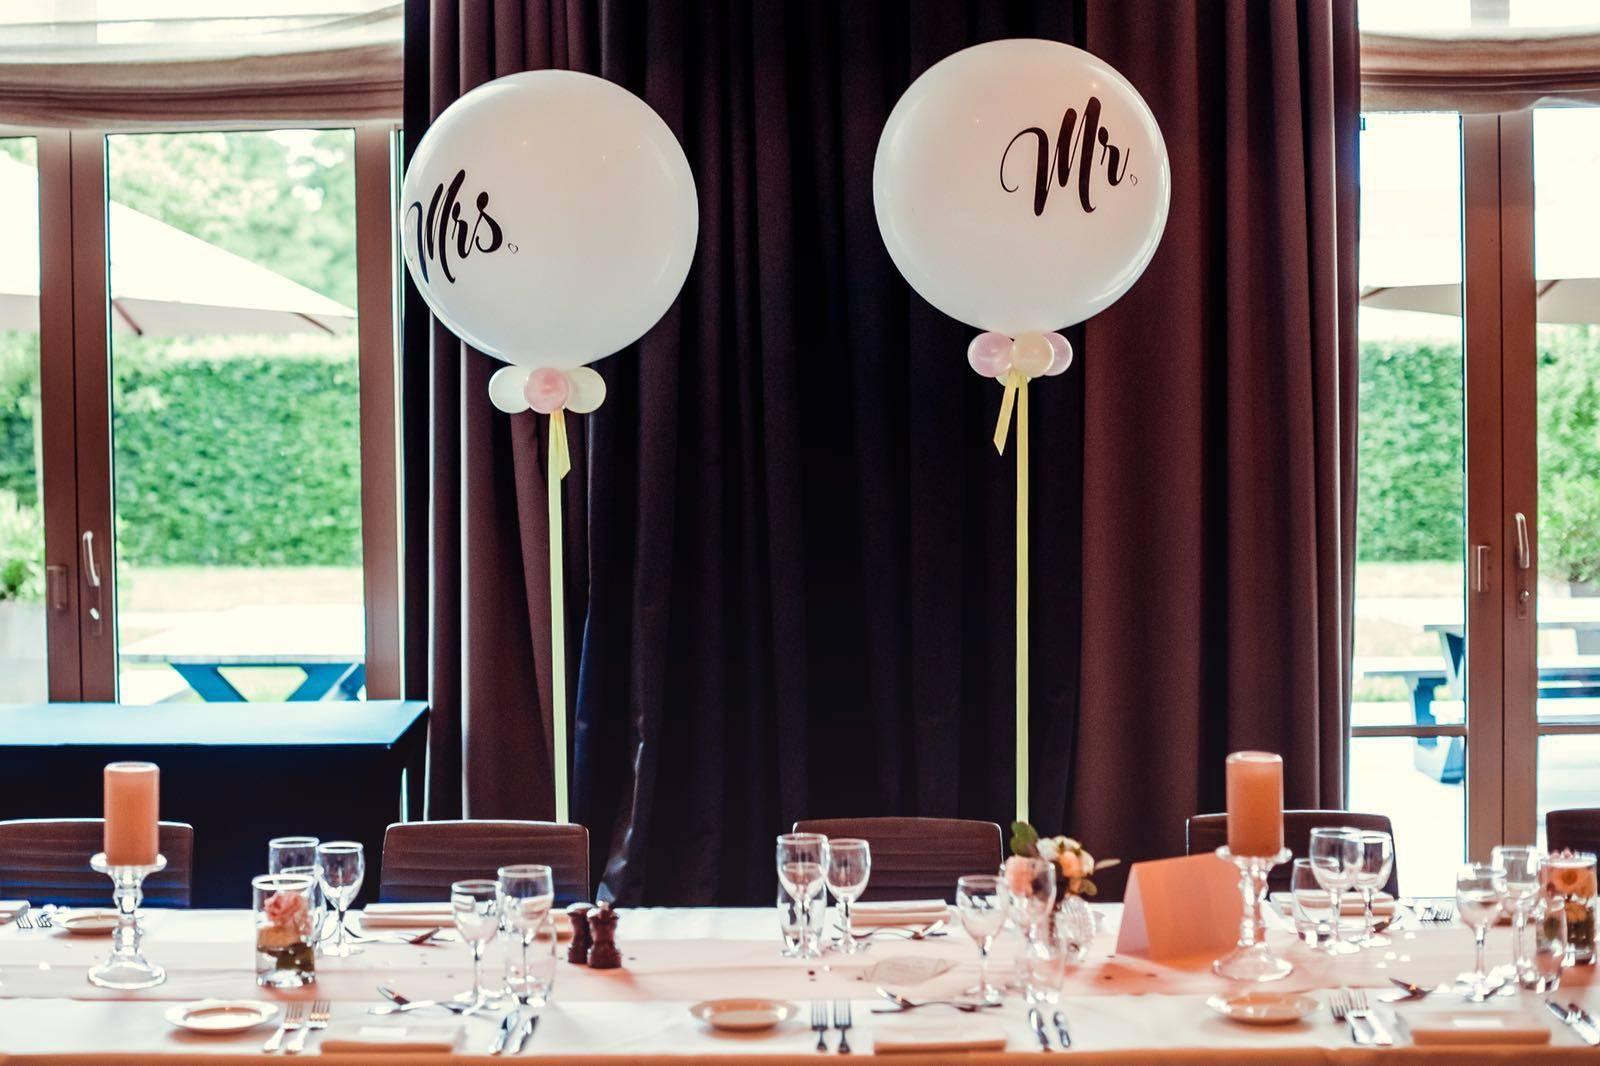 Hotel Serwir - Feestzaal te Waasland - Trouwzaal - House of Weddings - 25